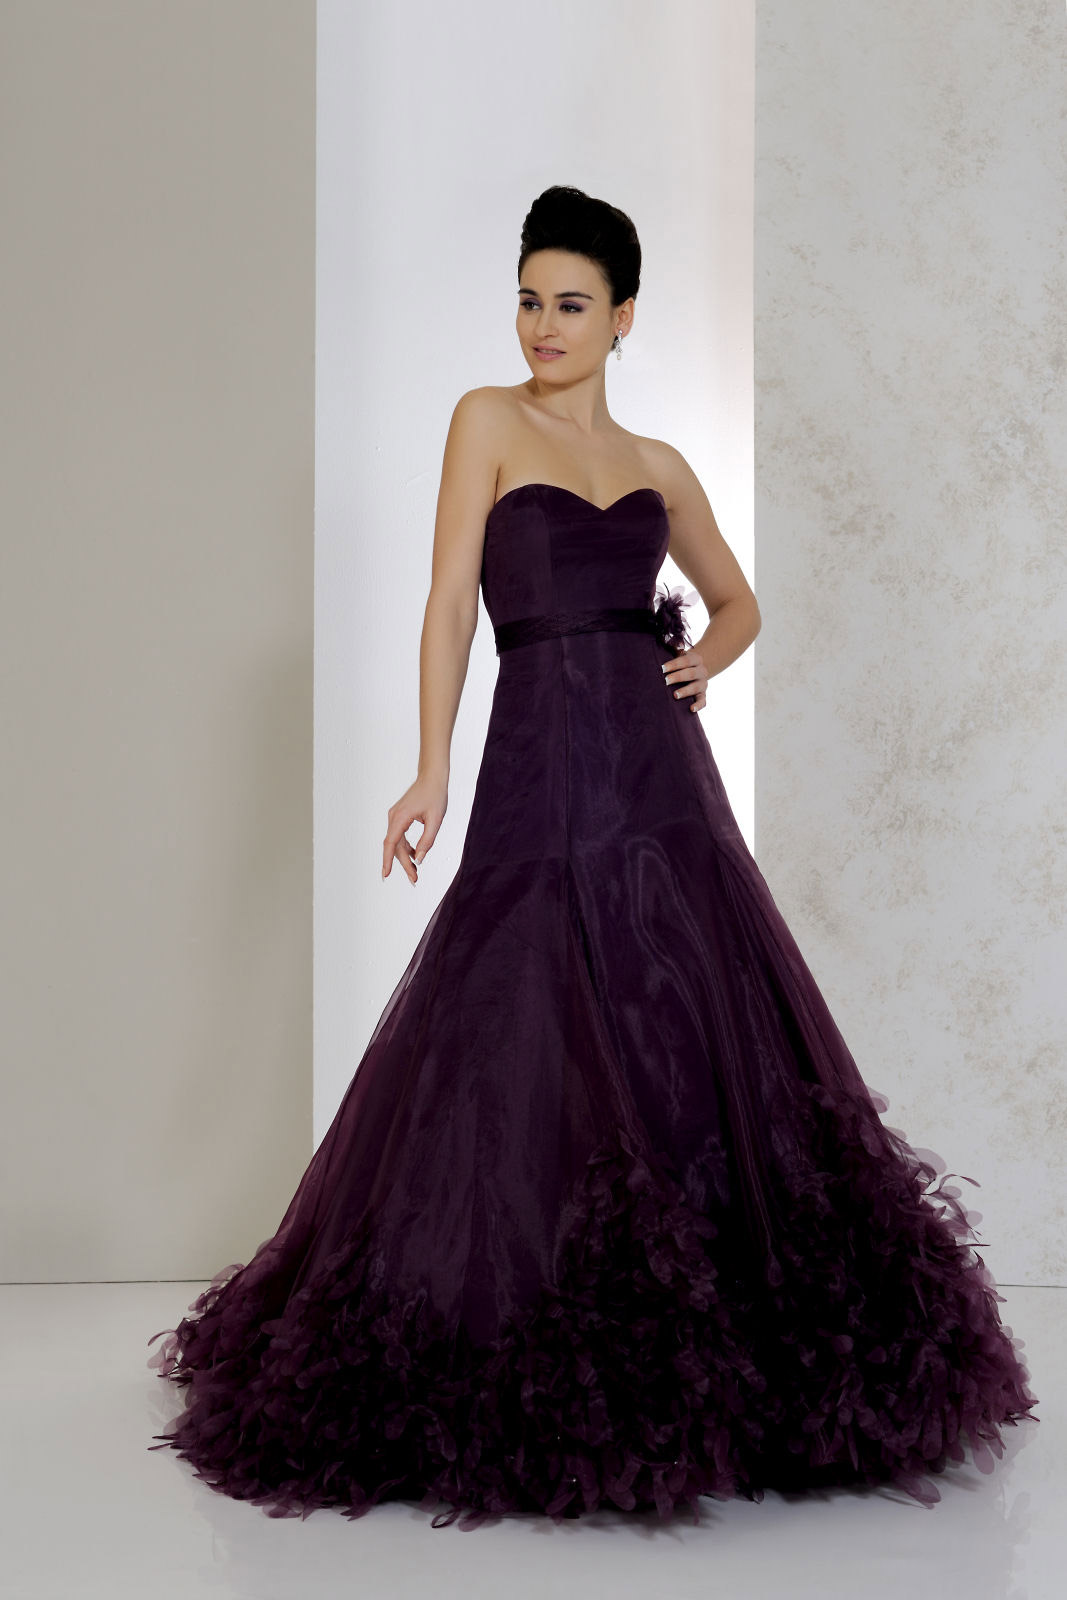 Extraordinary Gothic Wedding Dresses with Glamorous Touch